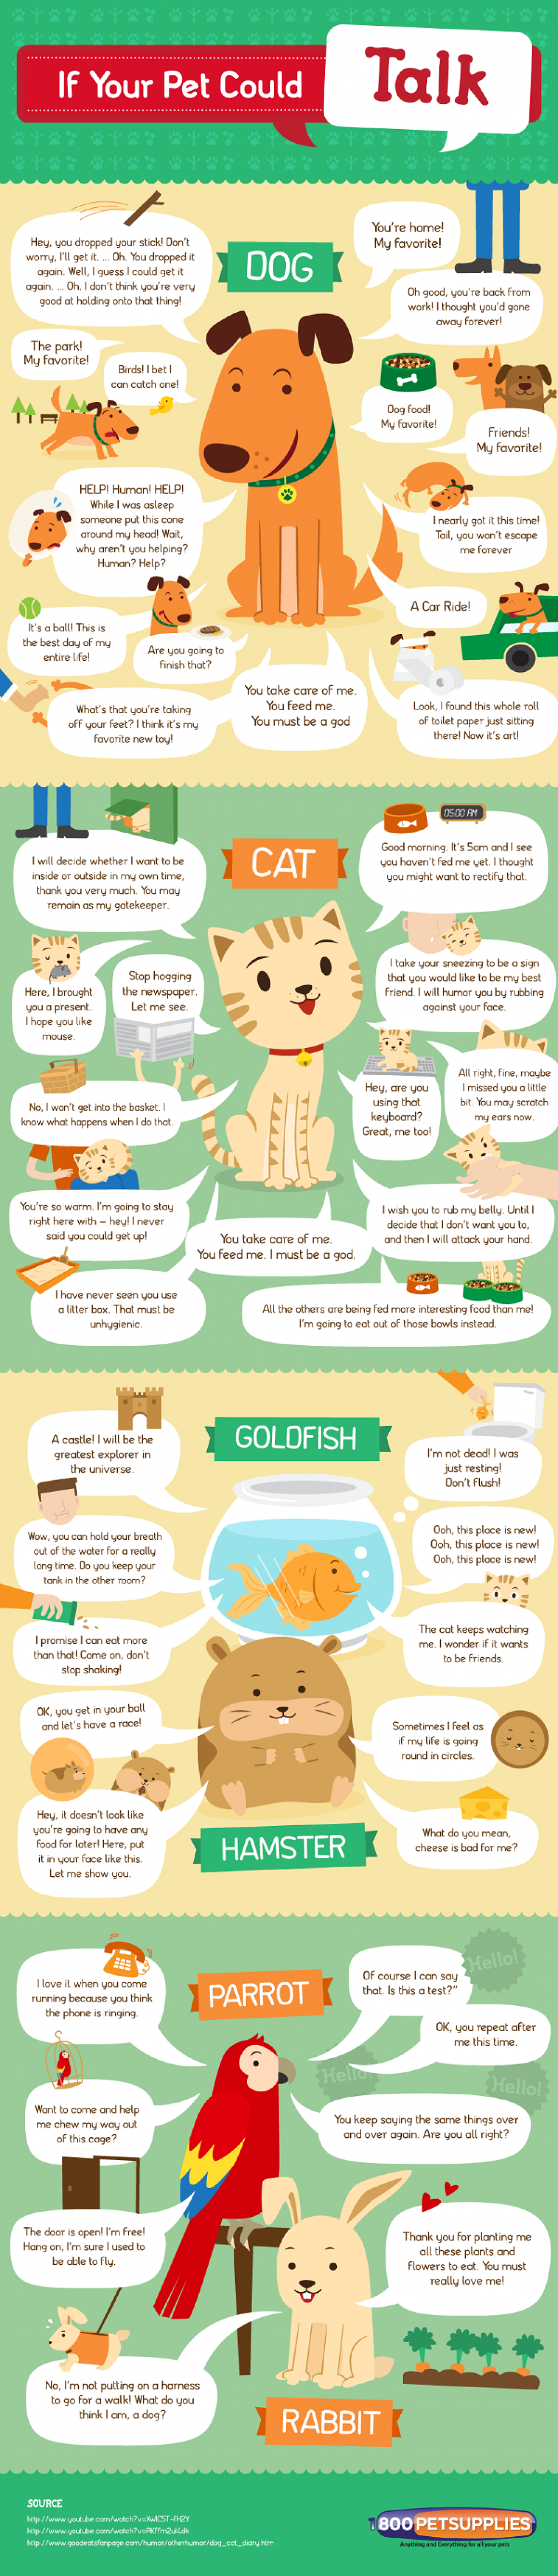 If Your Pet Could Talk Infographic